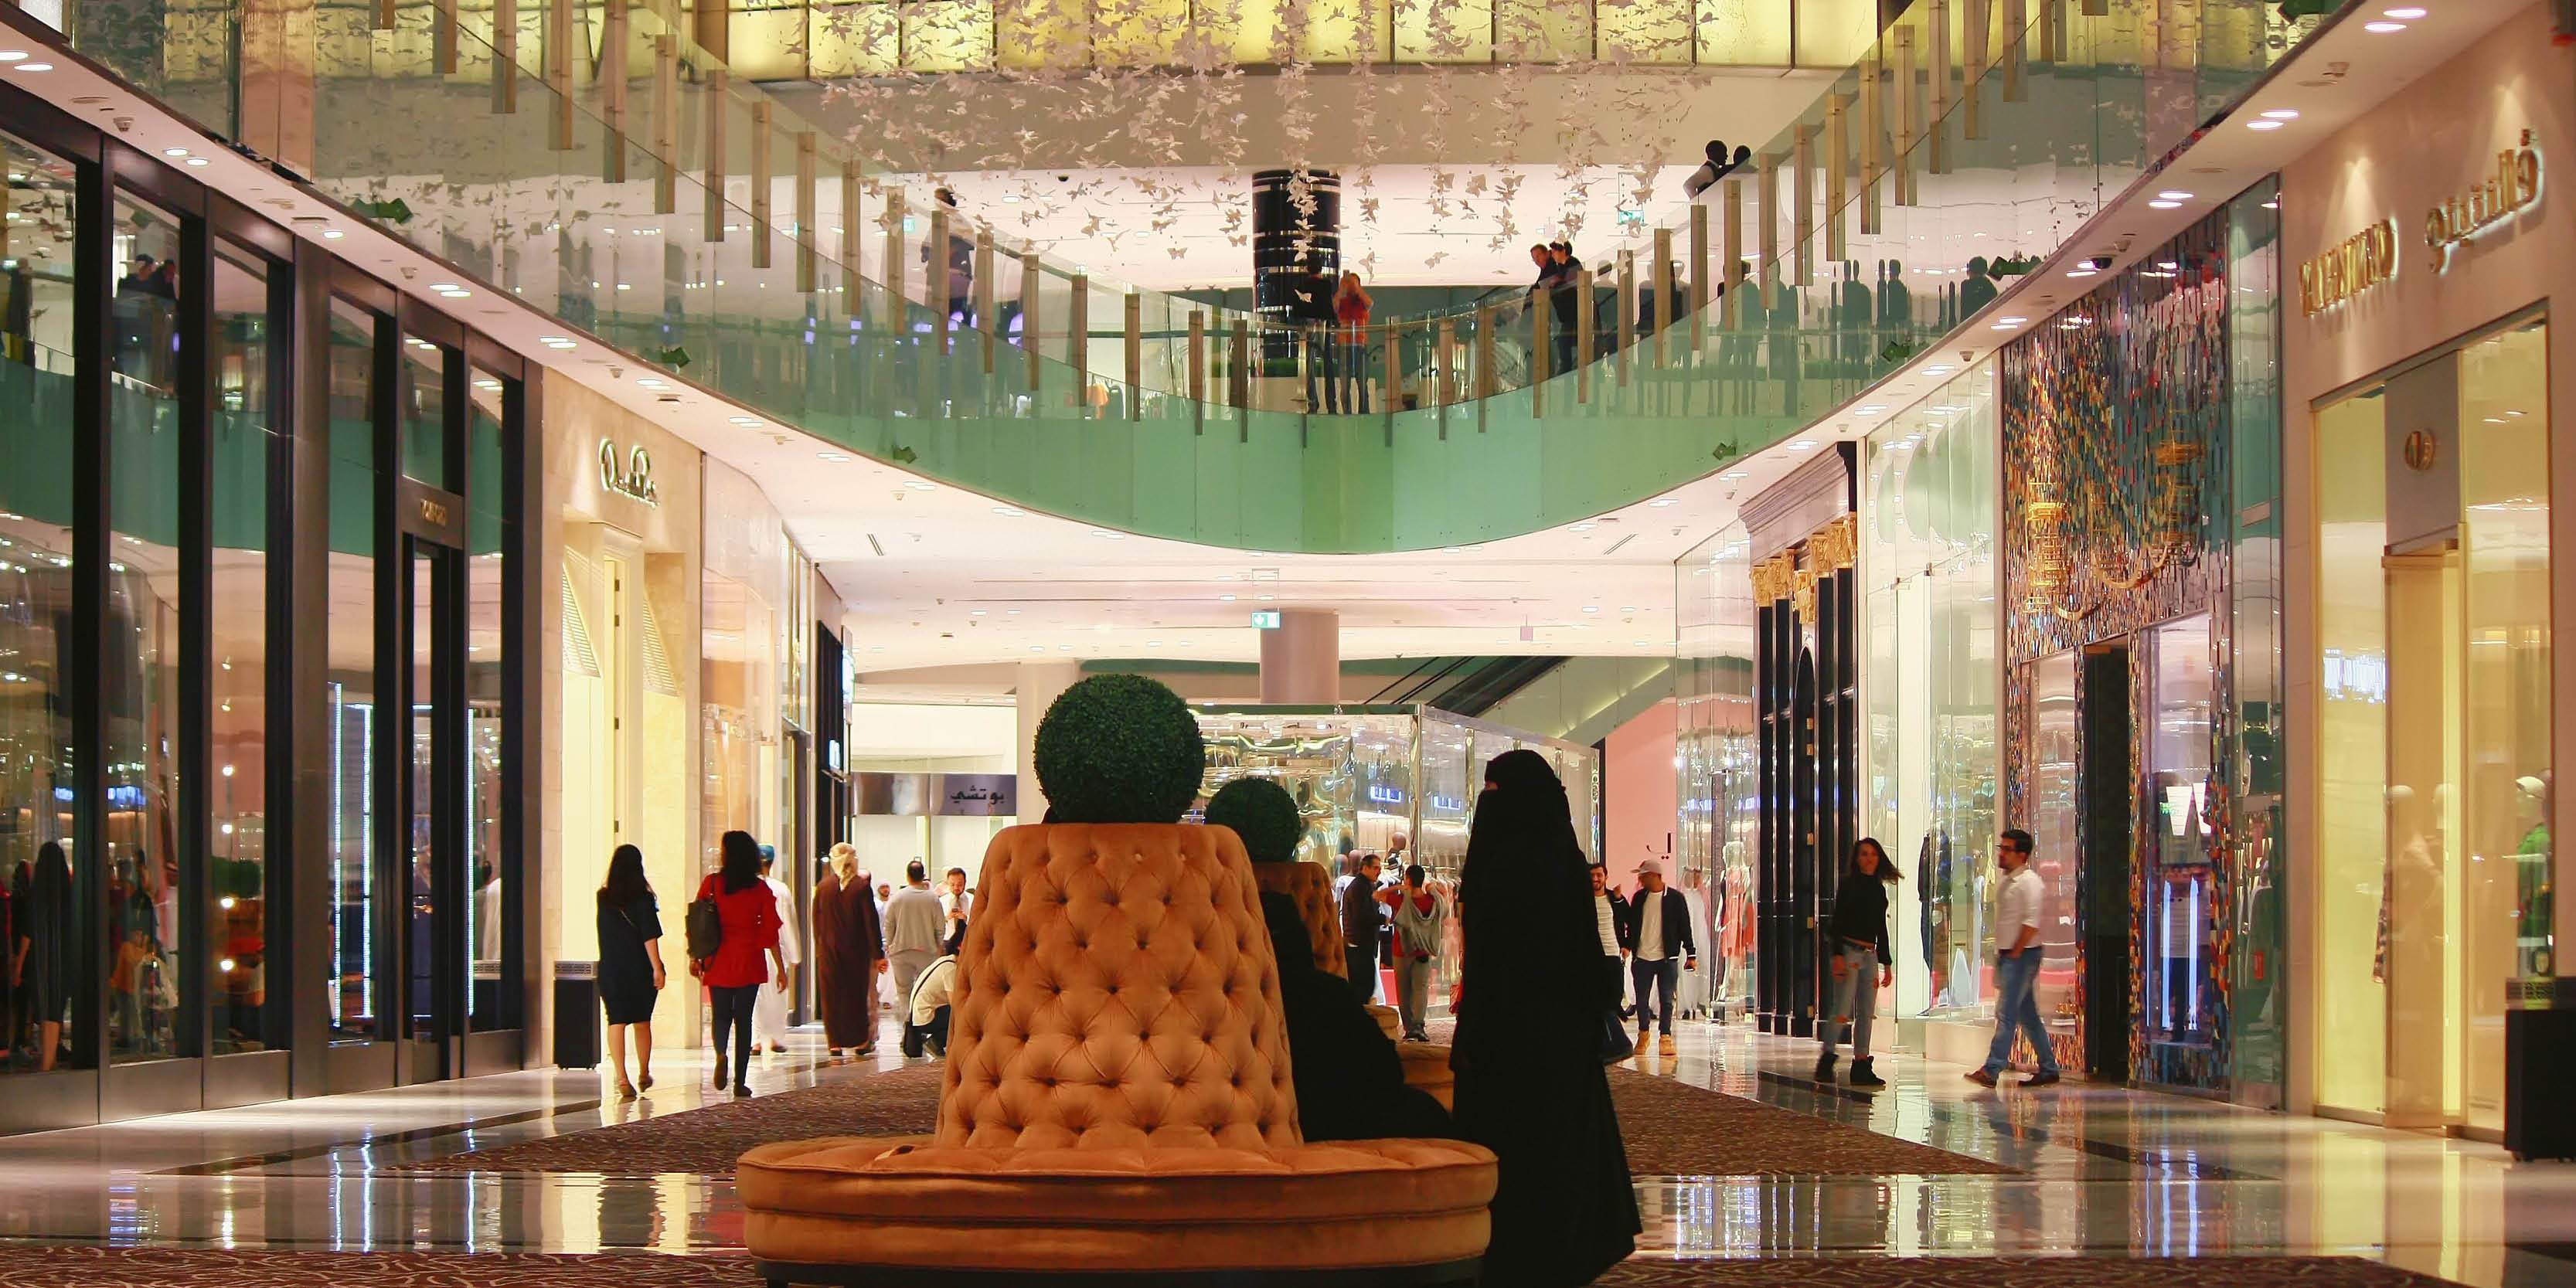 Dubai shopping - Last-minute holiday